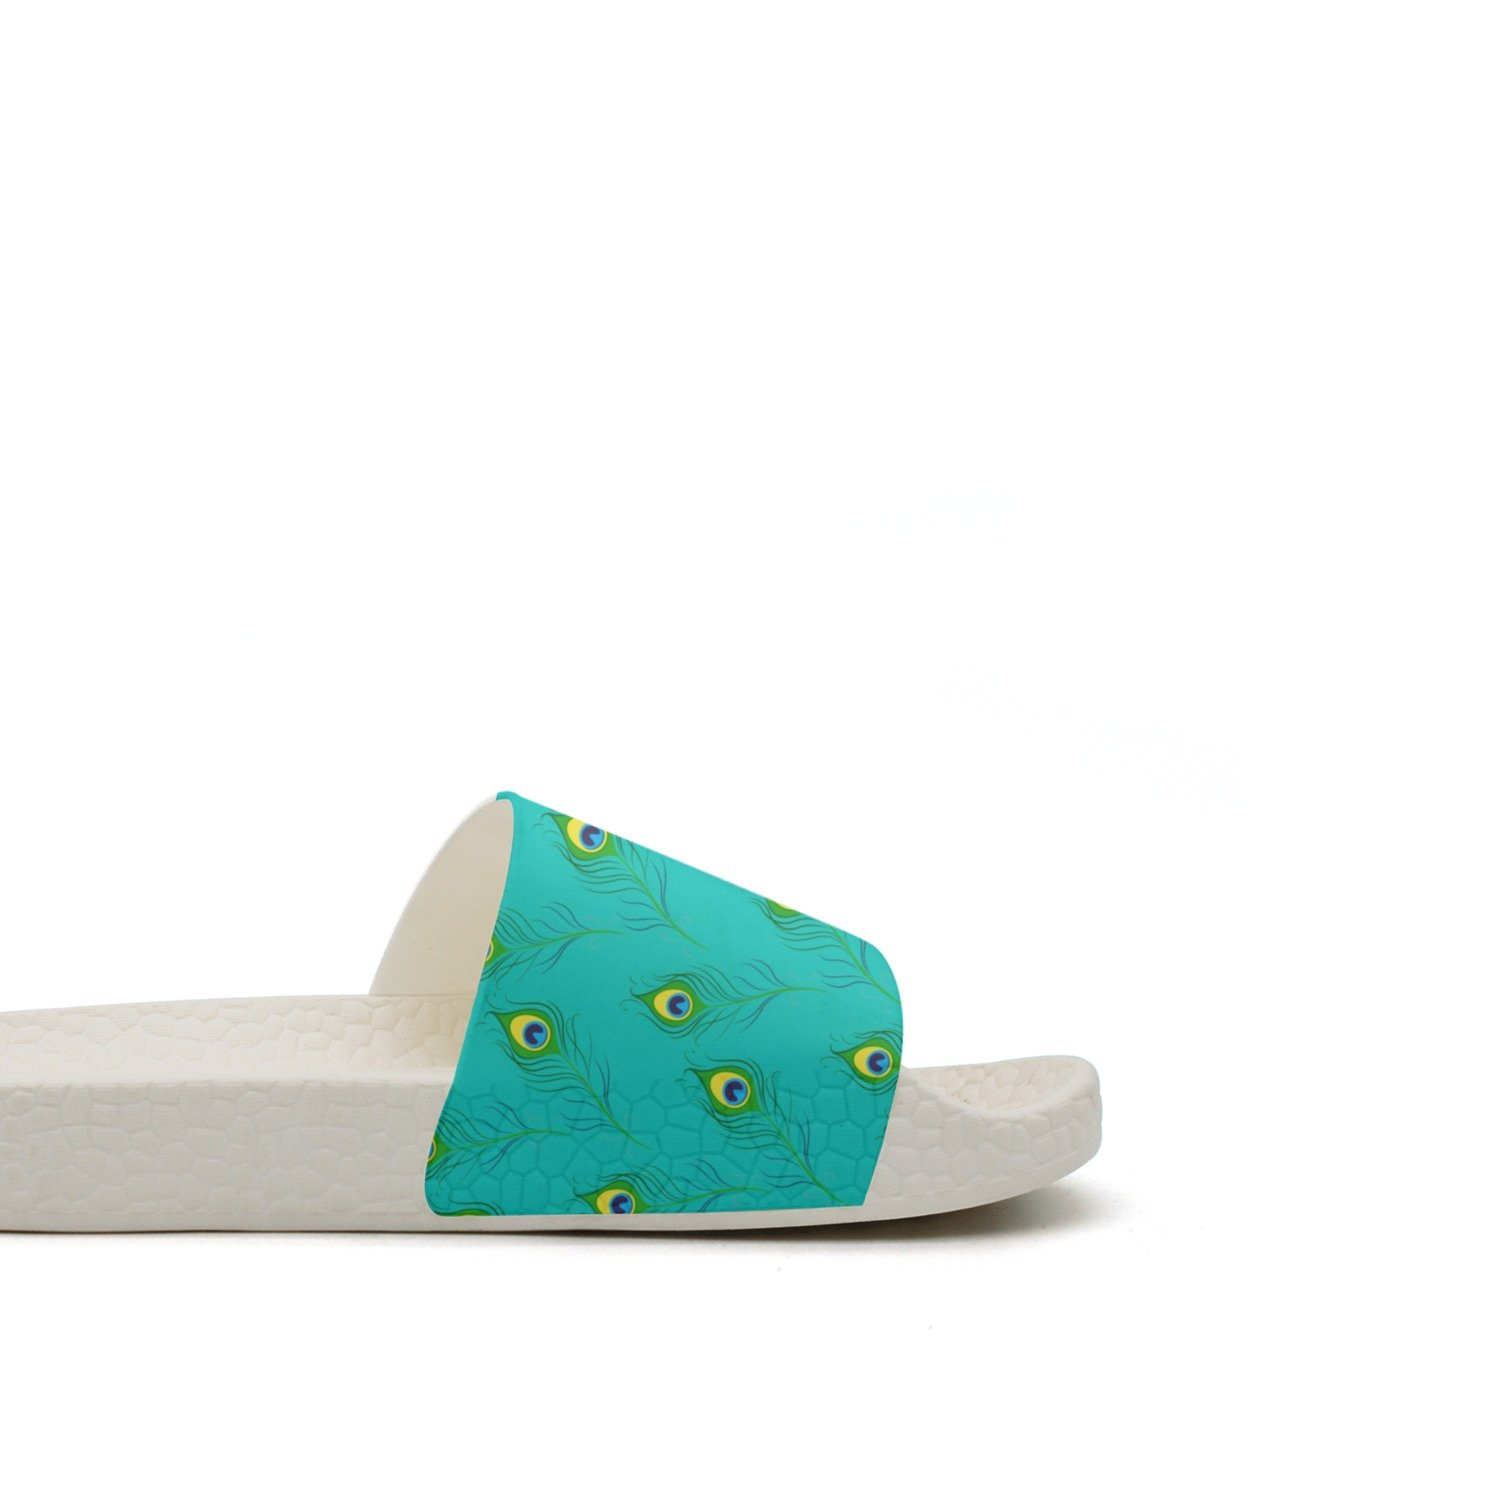 Peafowl Peacock Feathers Green Summer Slippers For Men